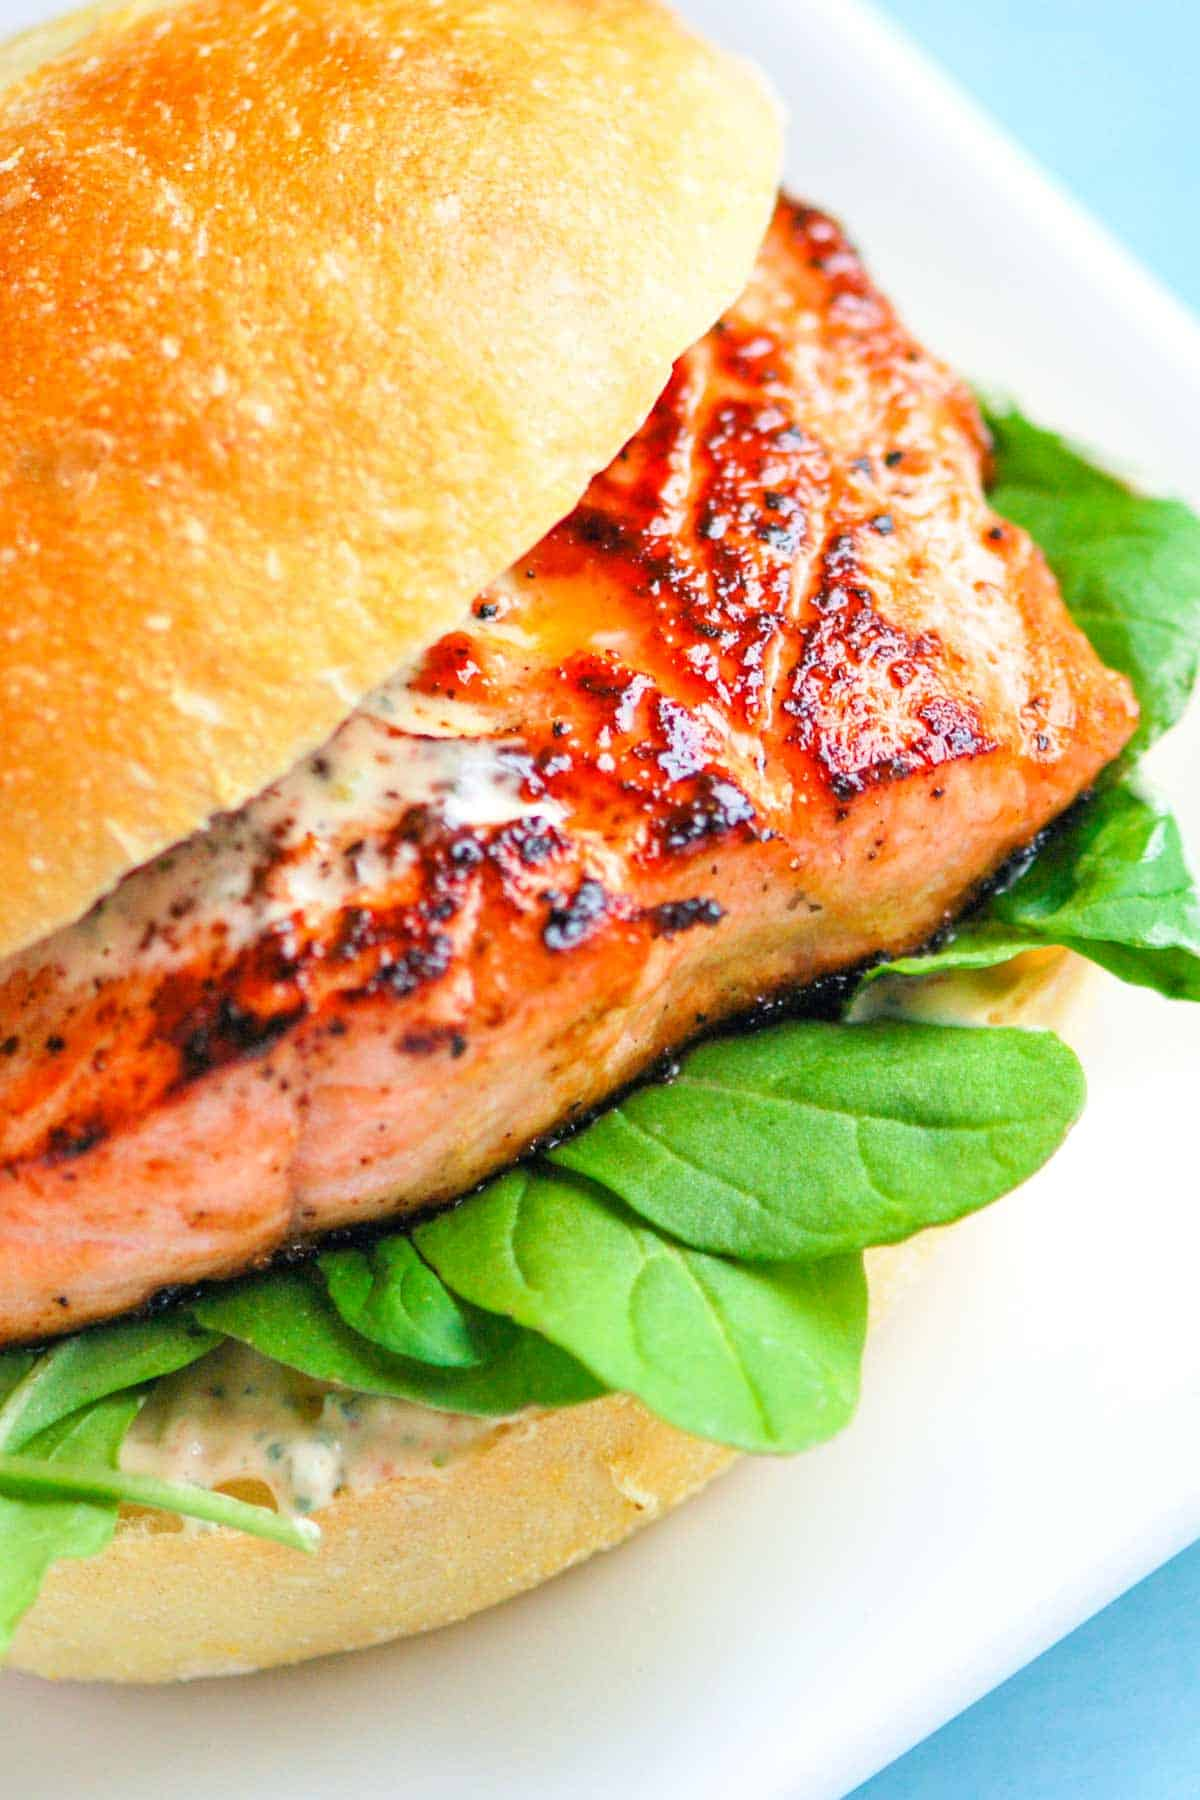 How to Make Salmon Burgers with Homemade Chipotle Mayonnaise